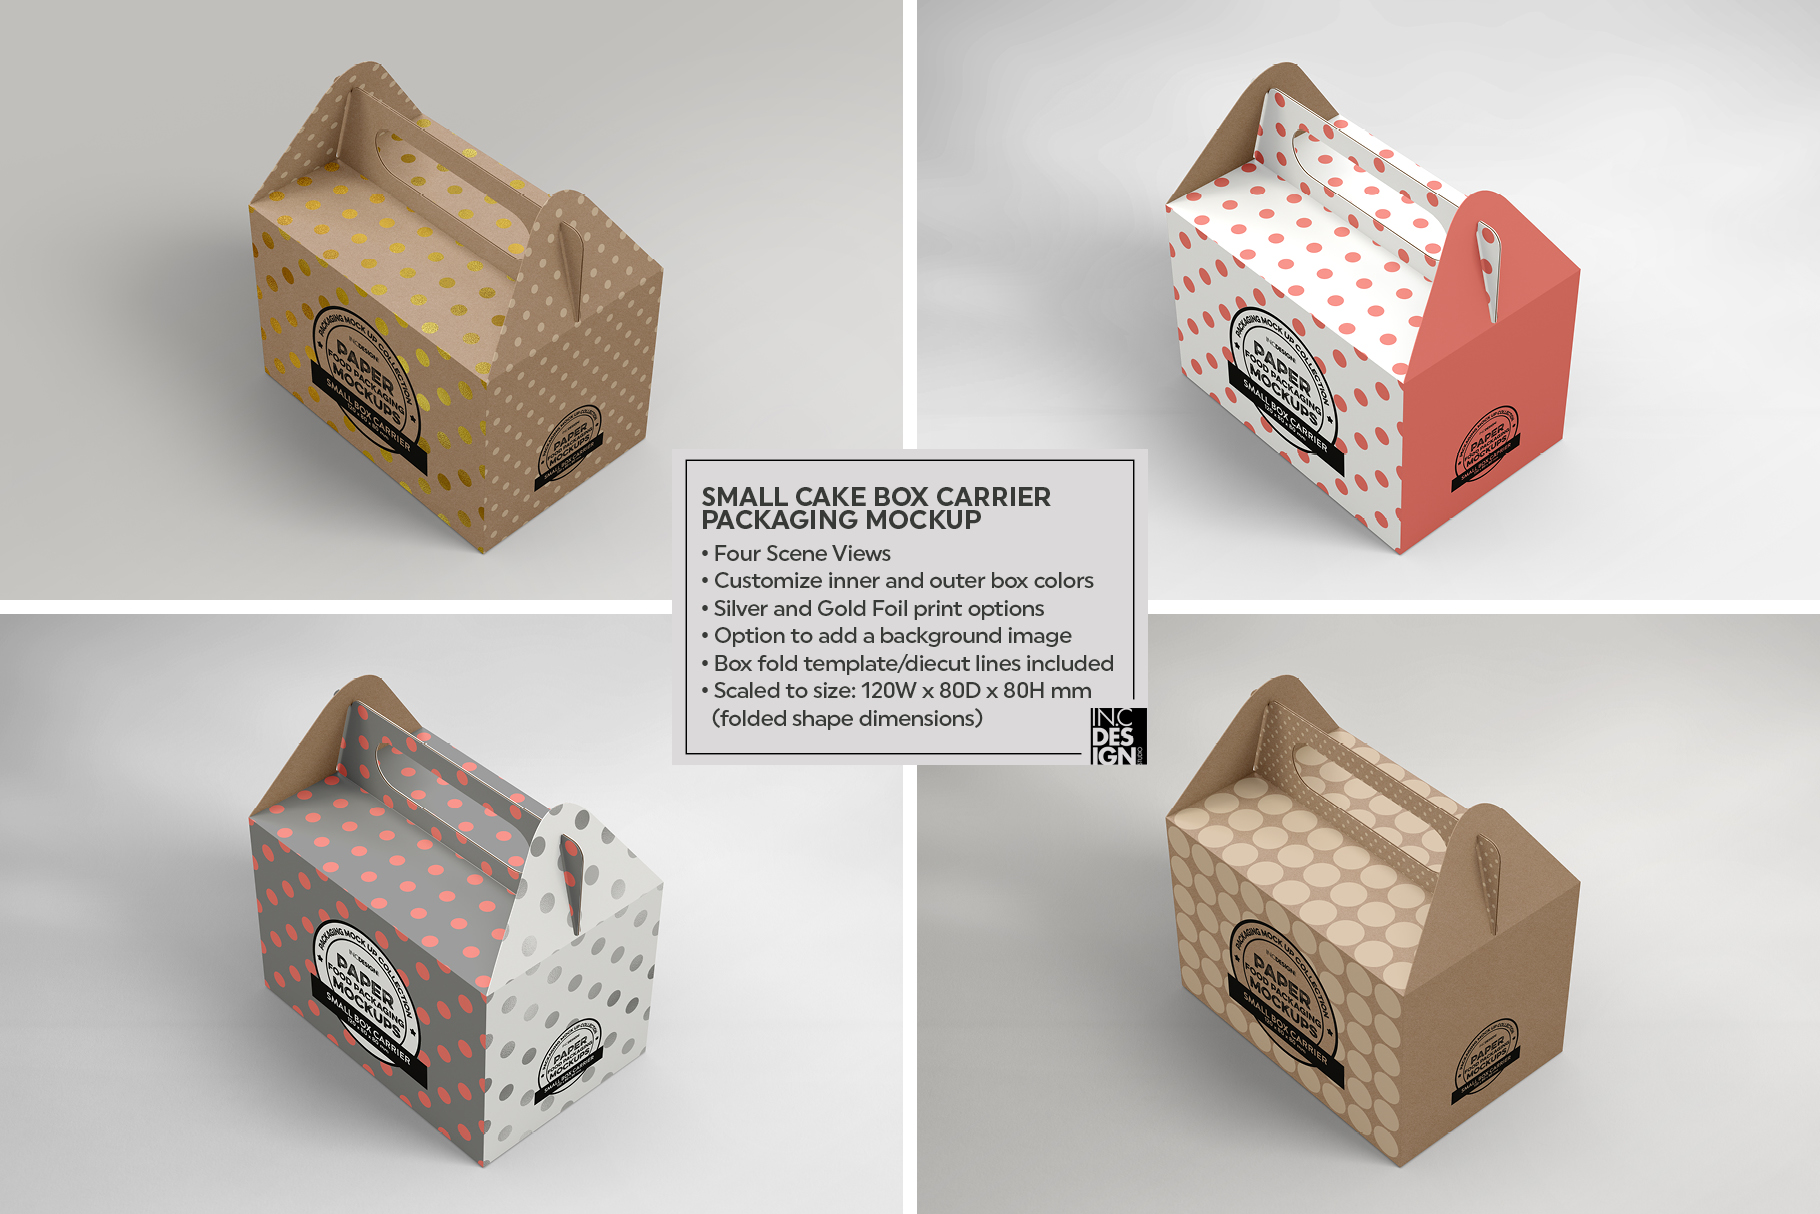 Small Cake Box Carrier Packaging Mockup example image 4